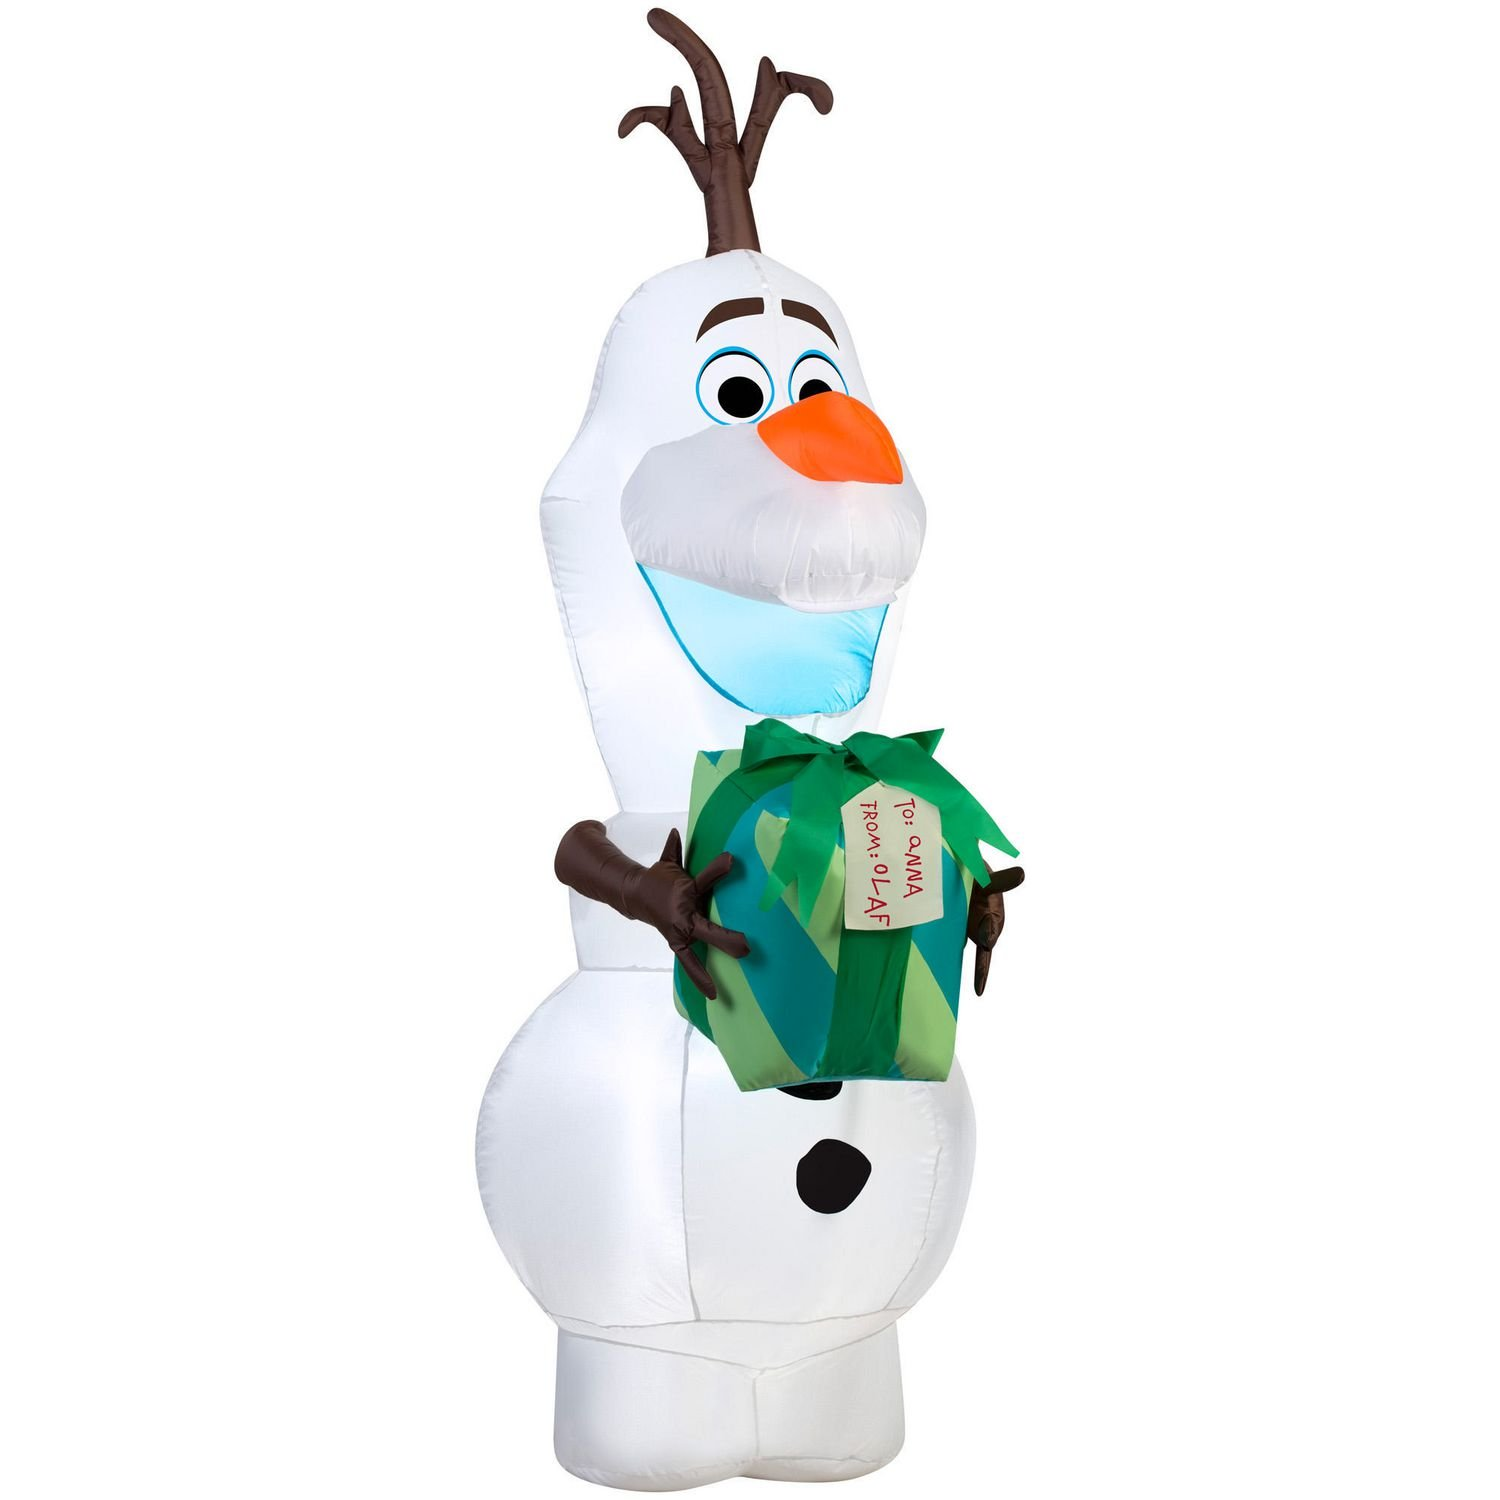 amazoncom airblown 55 foot disney frozen olaf winter self inflatable light up yard decor garden outdoor - Disney Christmas Inflatables